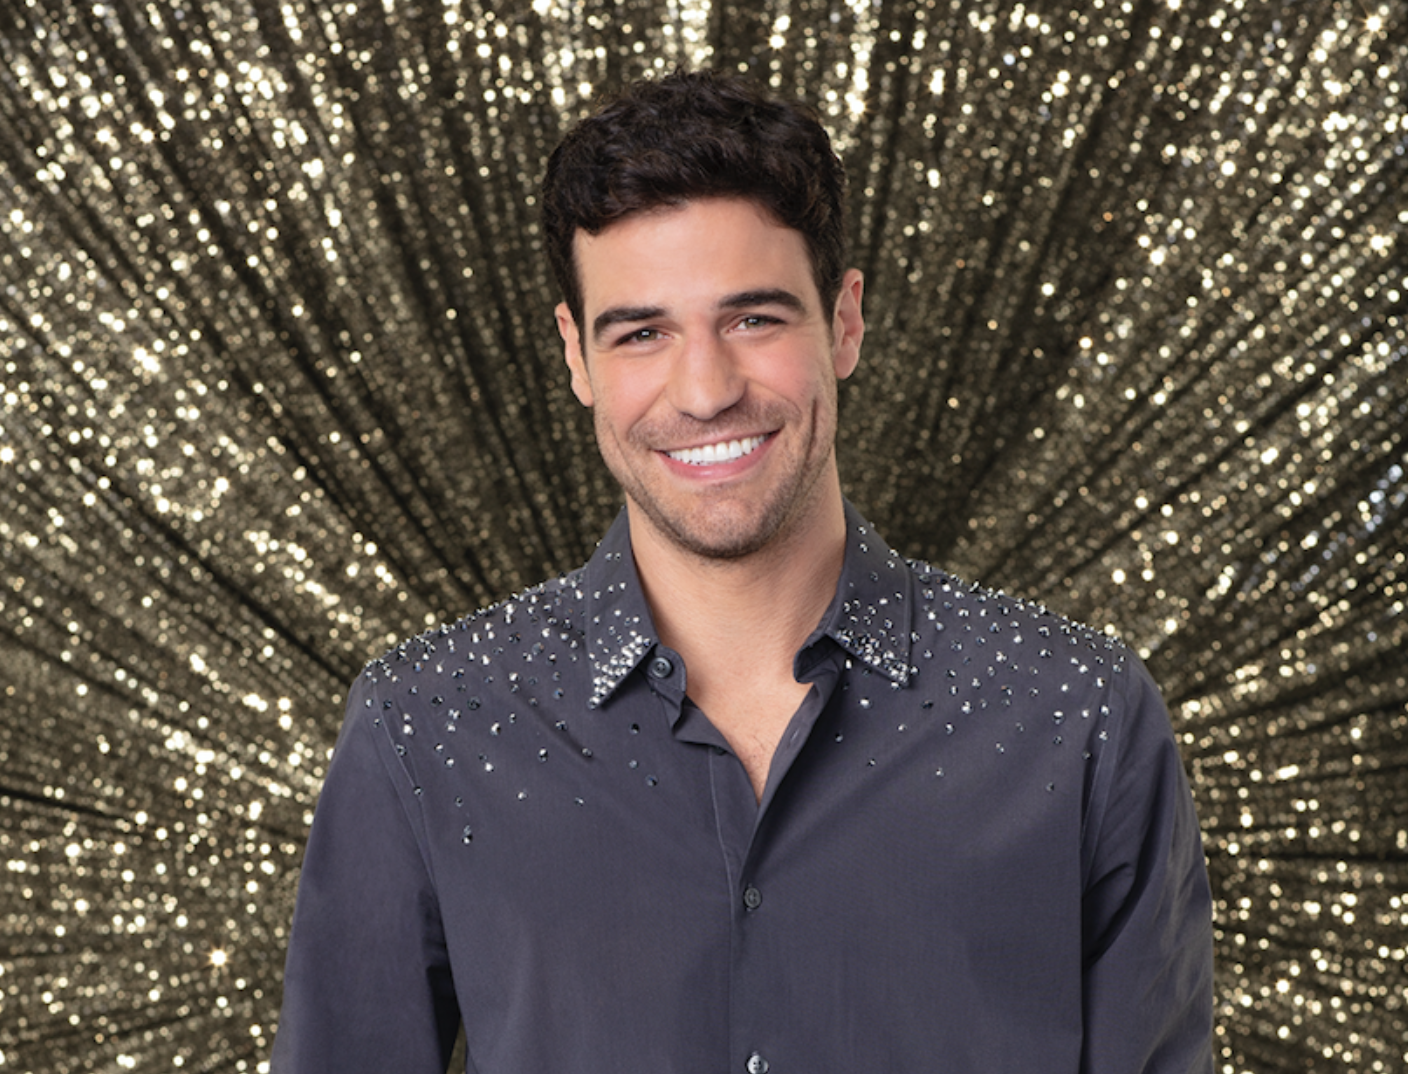 Fans Want Joe Amabile Off 'Dancing with the Stars'